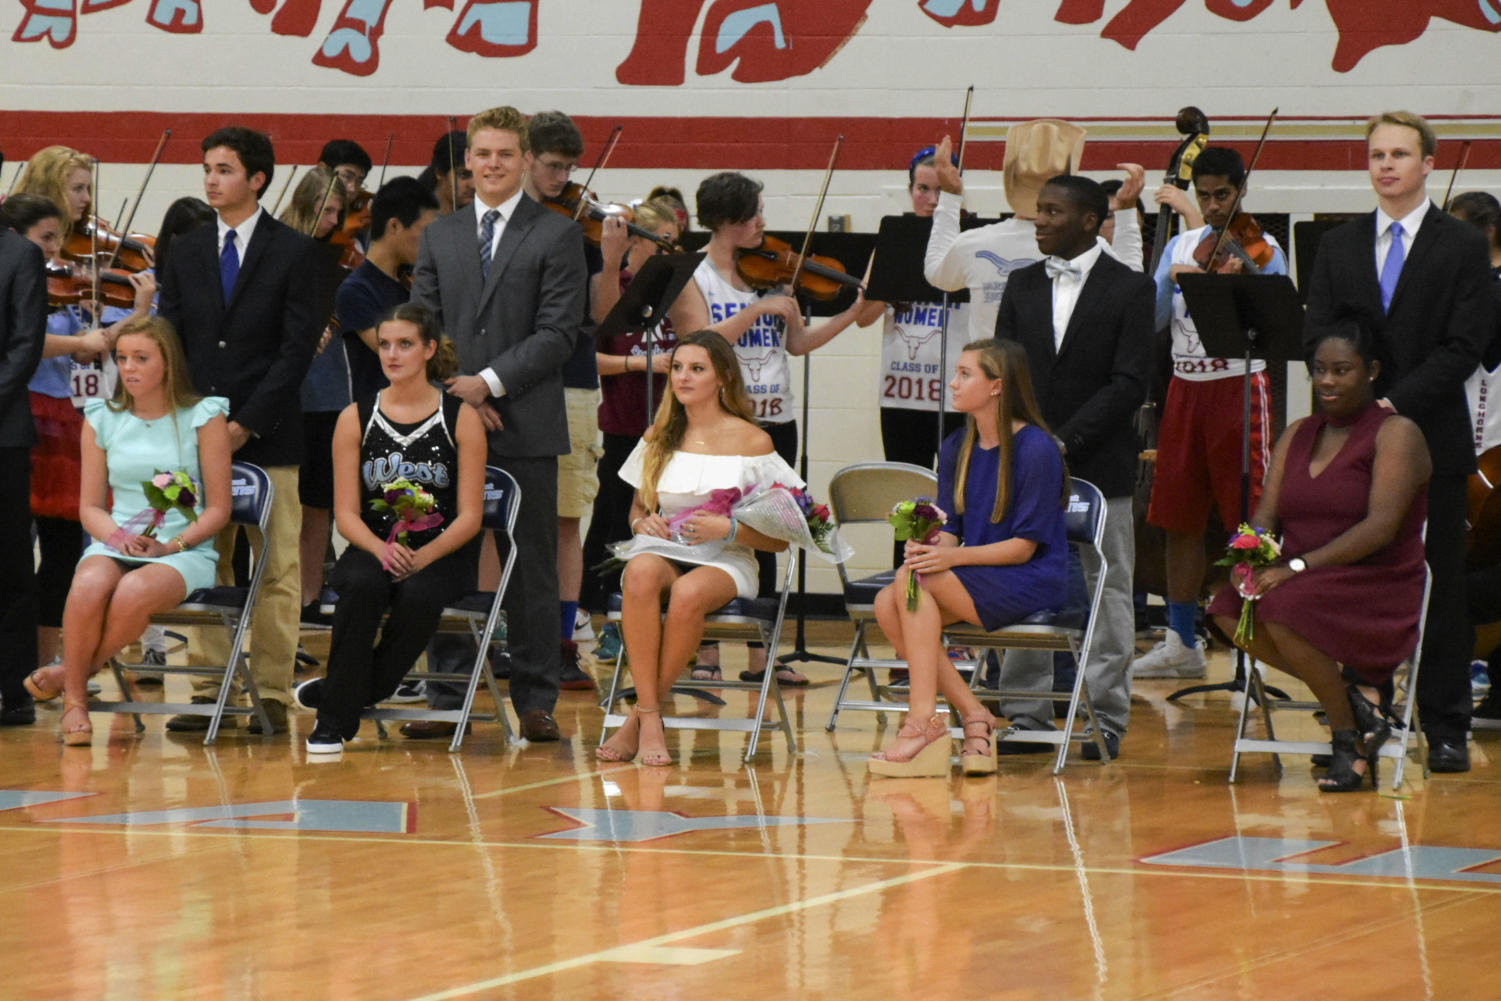 Waiting for the announcement of the Homecoming Queen, the 2017 Homecoming court sits in the gym during the fall pep rally.